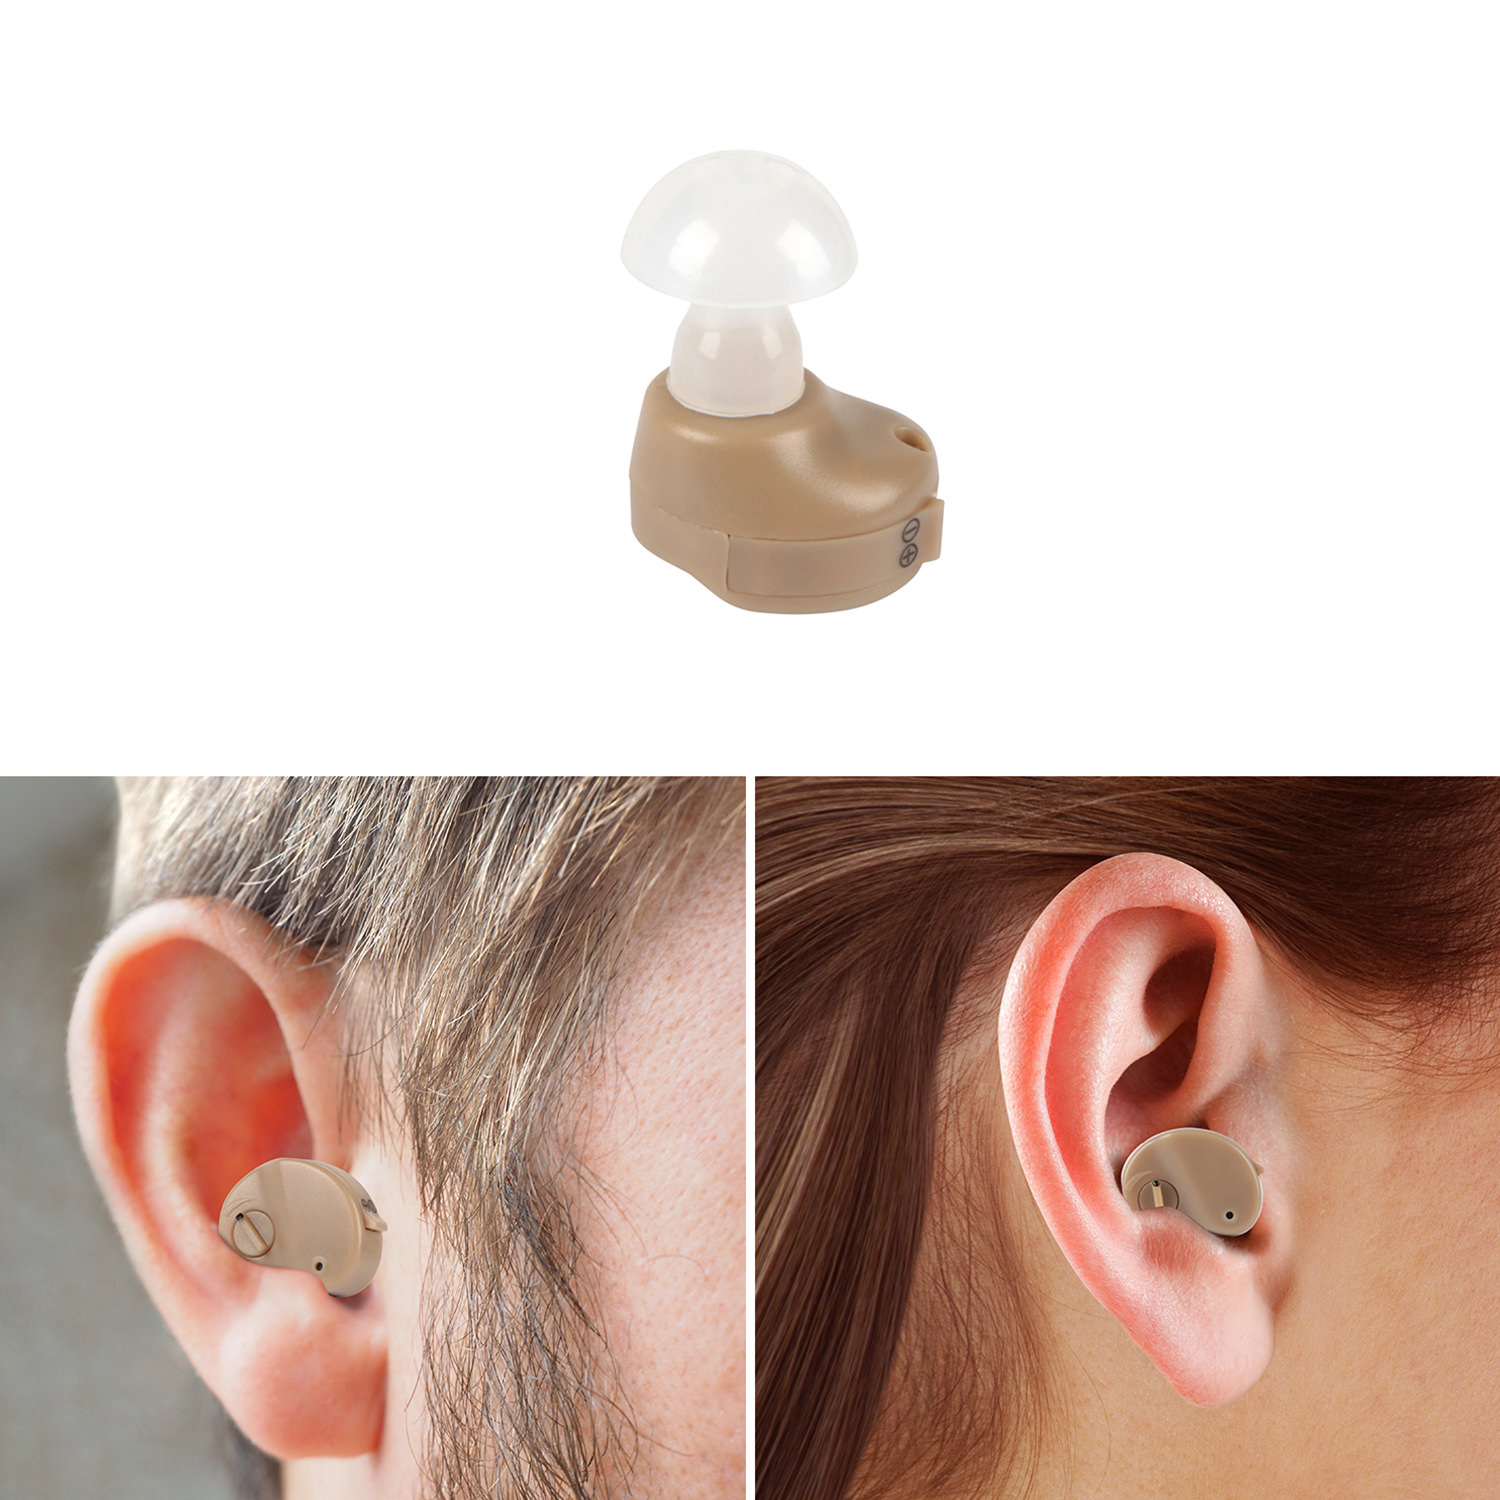 Cheap hearing aids walmart